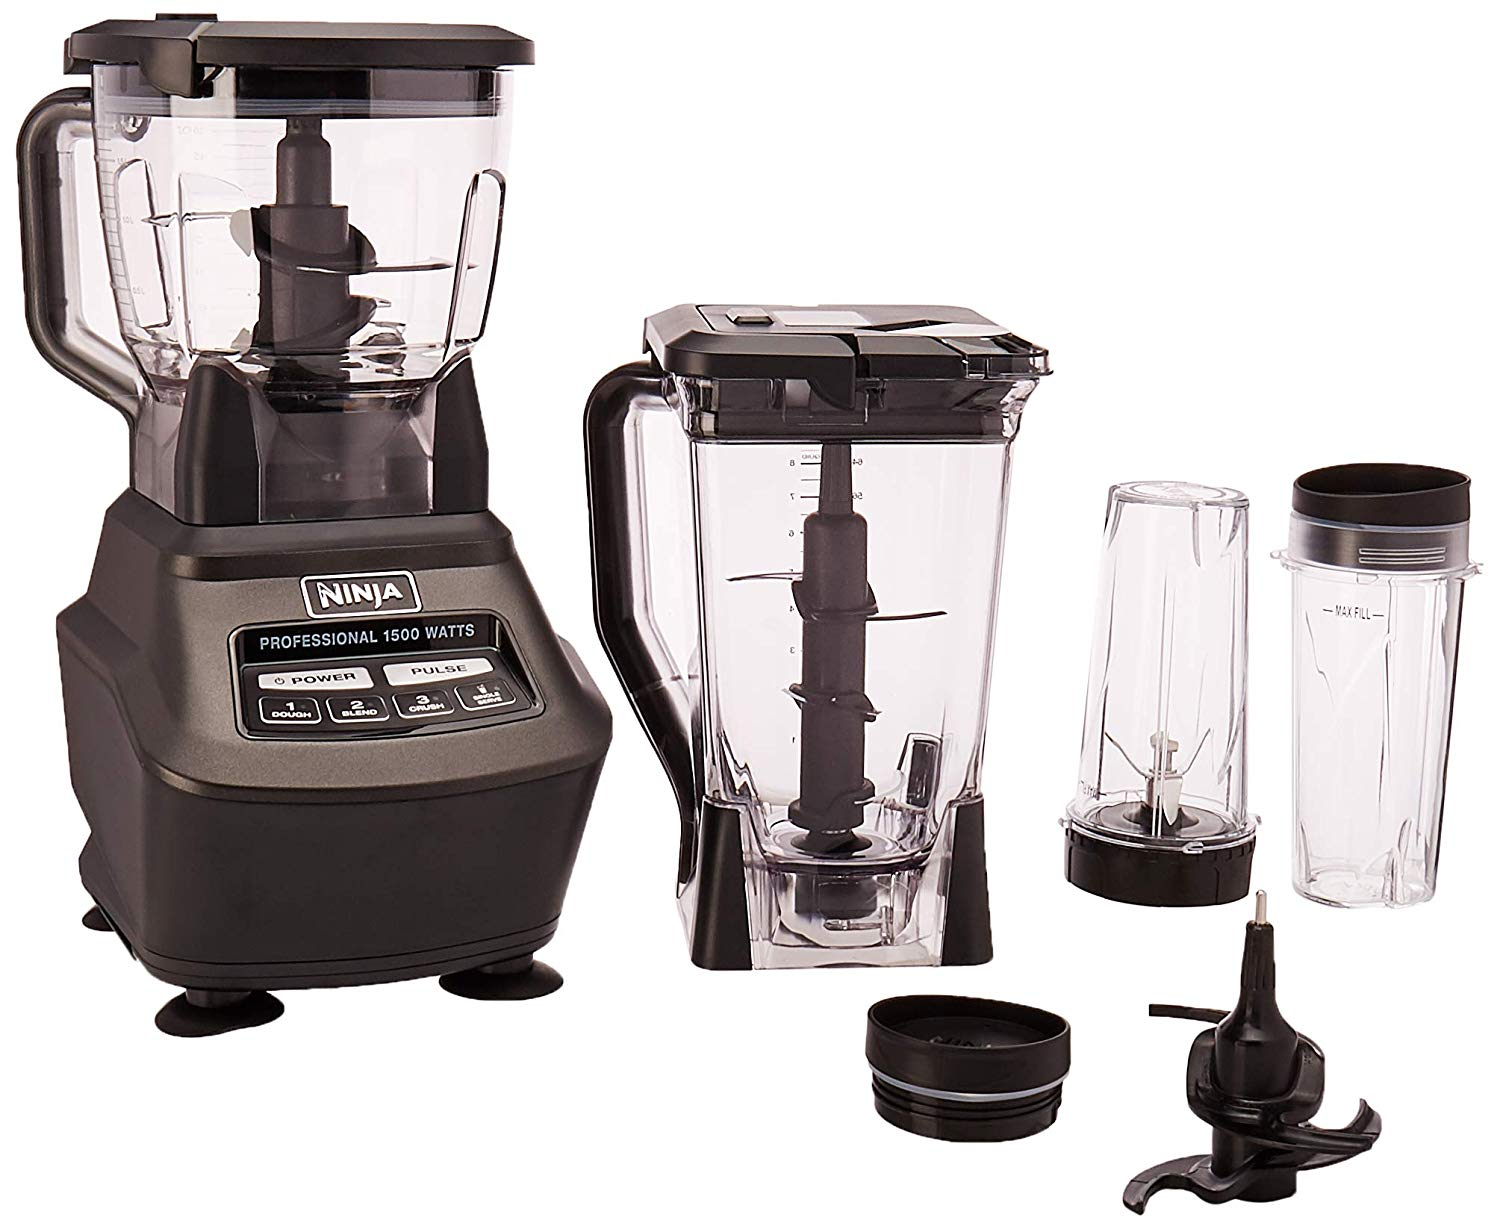 Ninja mega kitchen system (bl770) blender/food processor